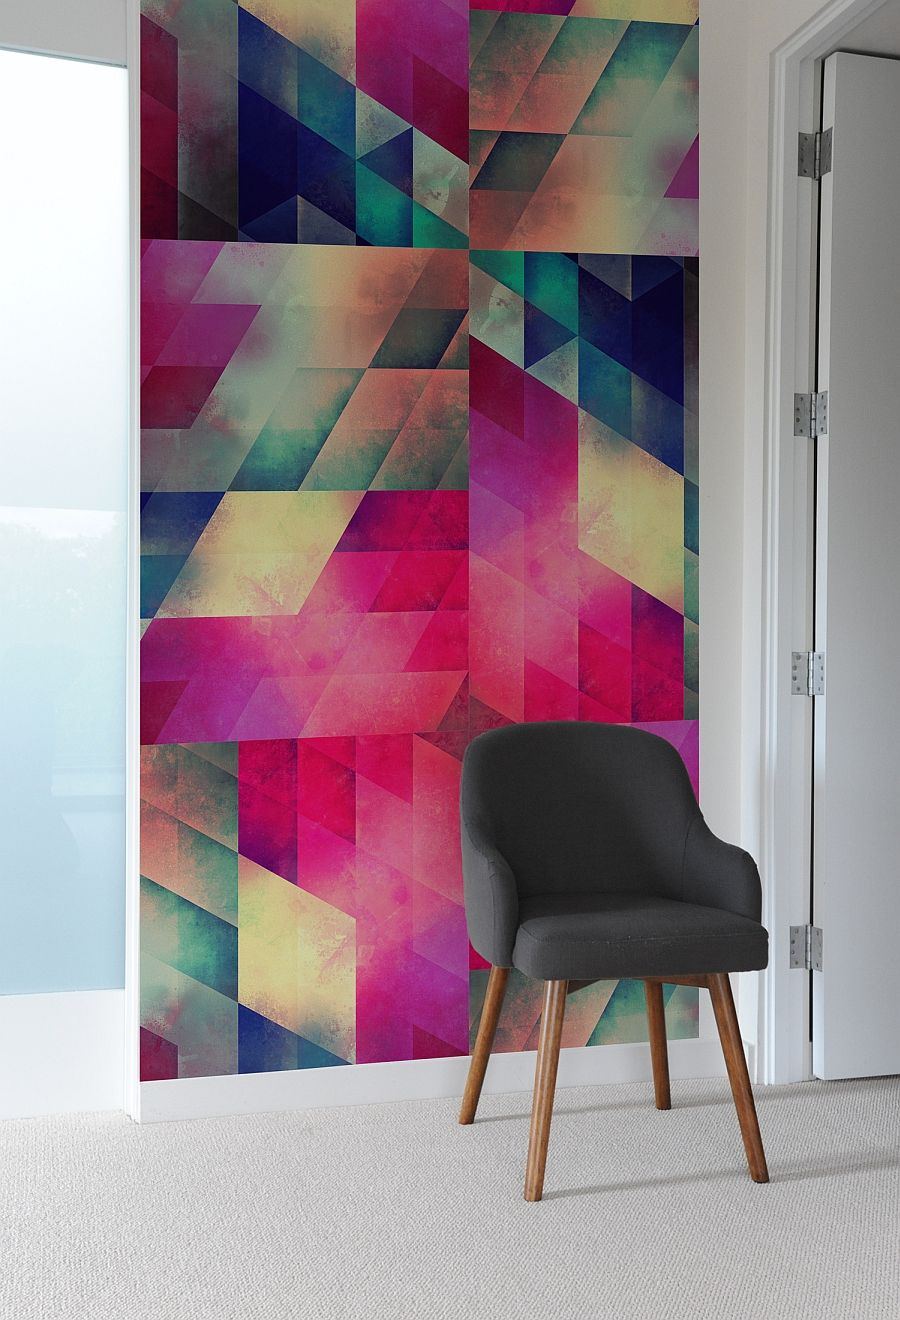 Create A Captivating Accent Wall With Geometric-Patterned Wall Tiles ...